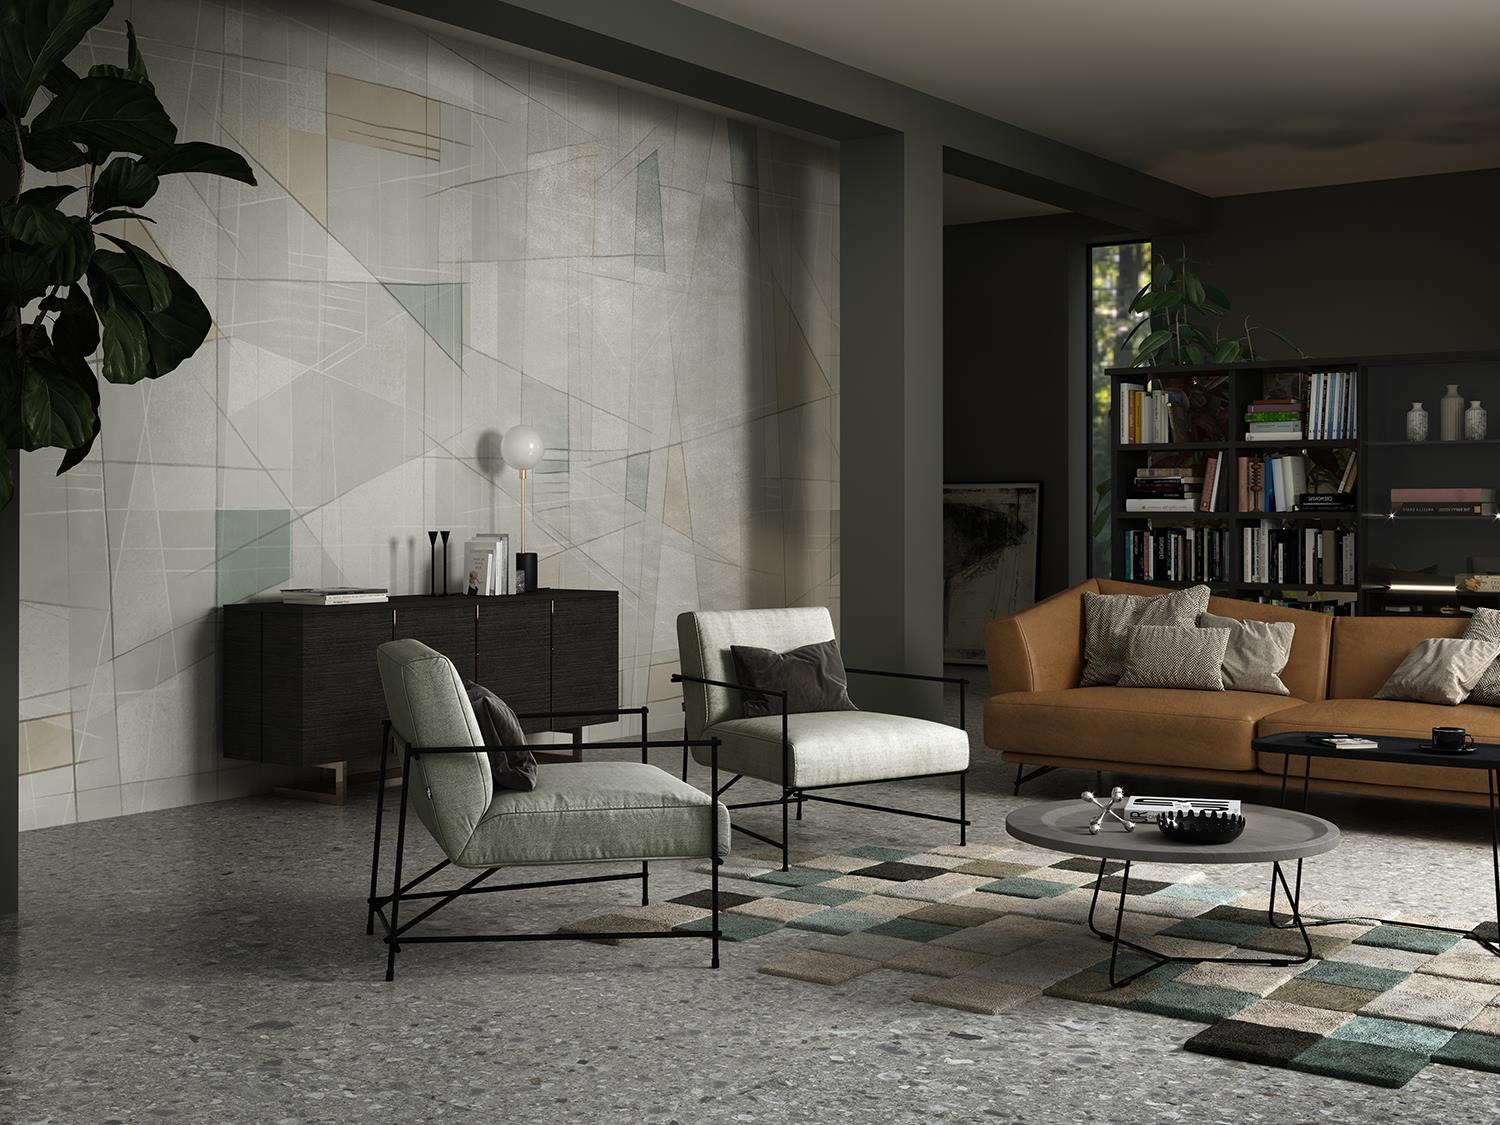 Cotto d'Este innovatively reinterprets wallpaper with ultra-thin ceramic slabs: Photo 4